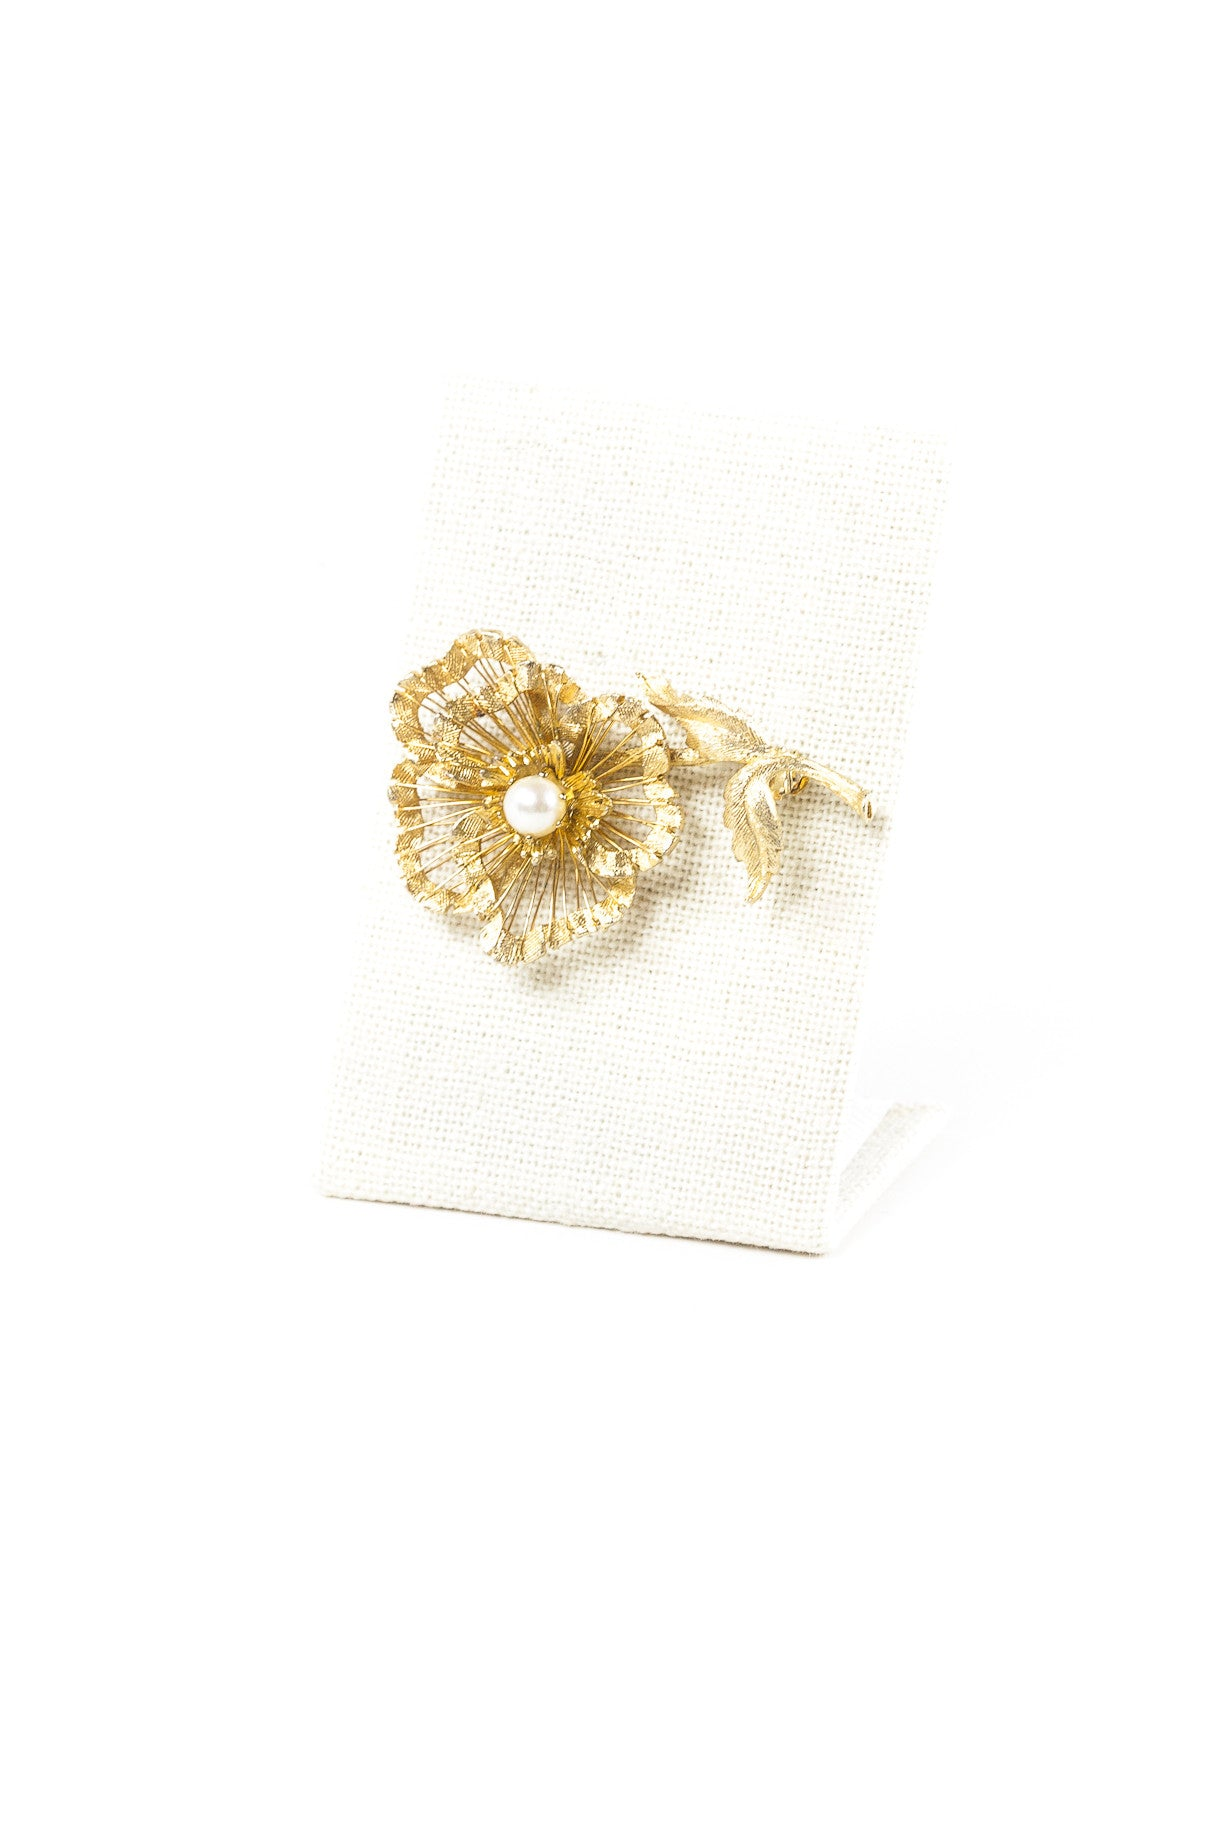 60's__Brooks__Dainty Floral Brooch